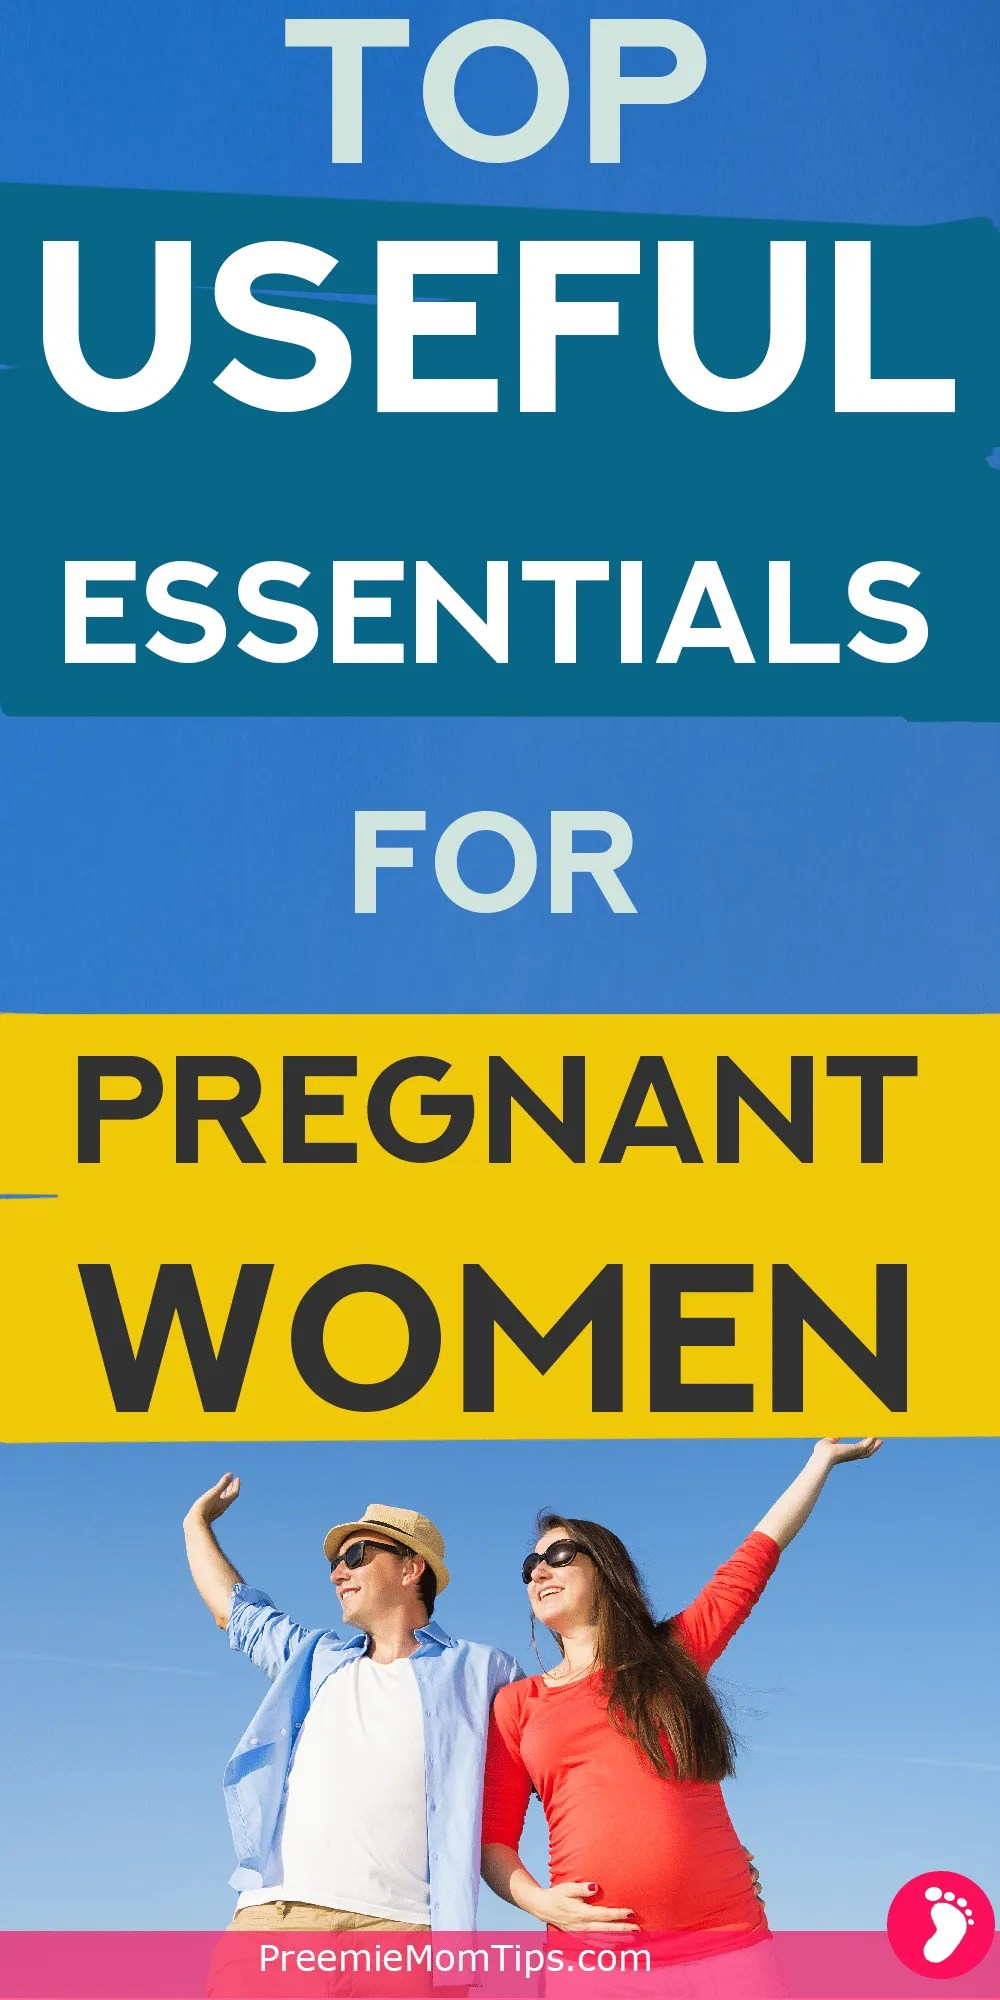 Here are the essentials every pregnant woman would be grateful, relief and happy to have and use! Check out this guide full of useful items for new moms and babies!